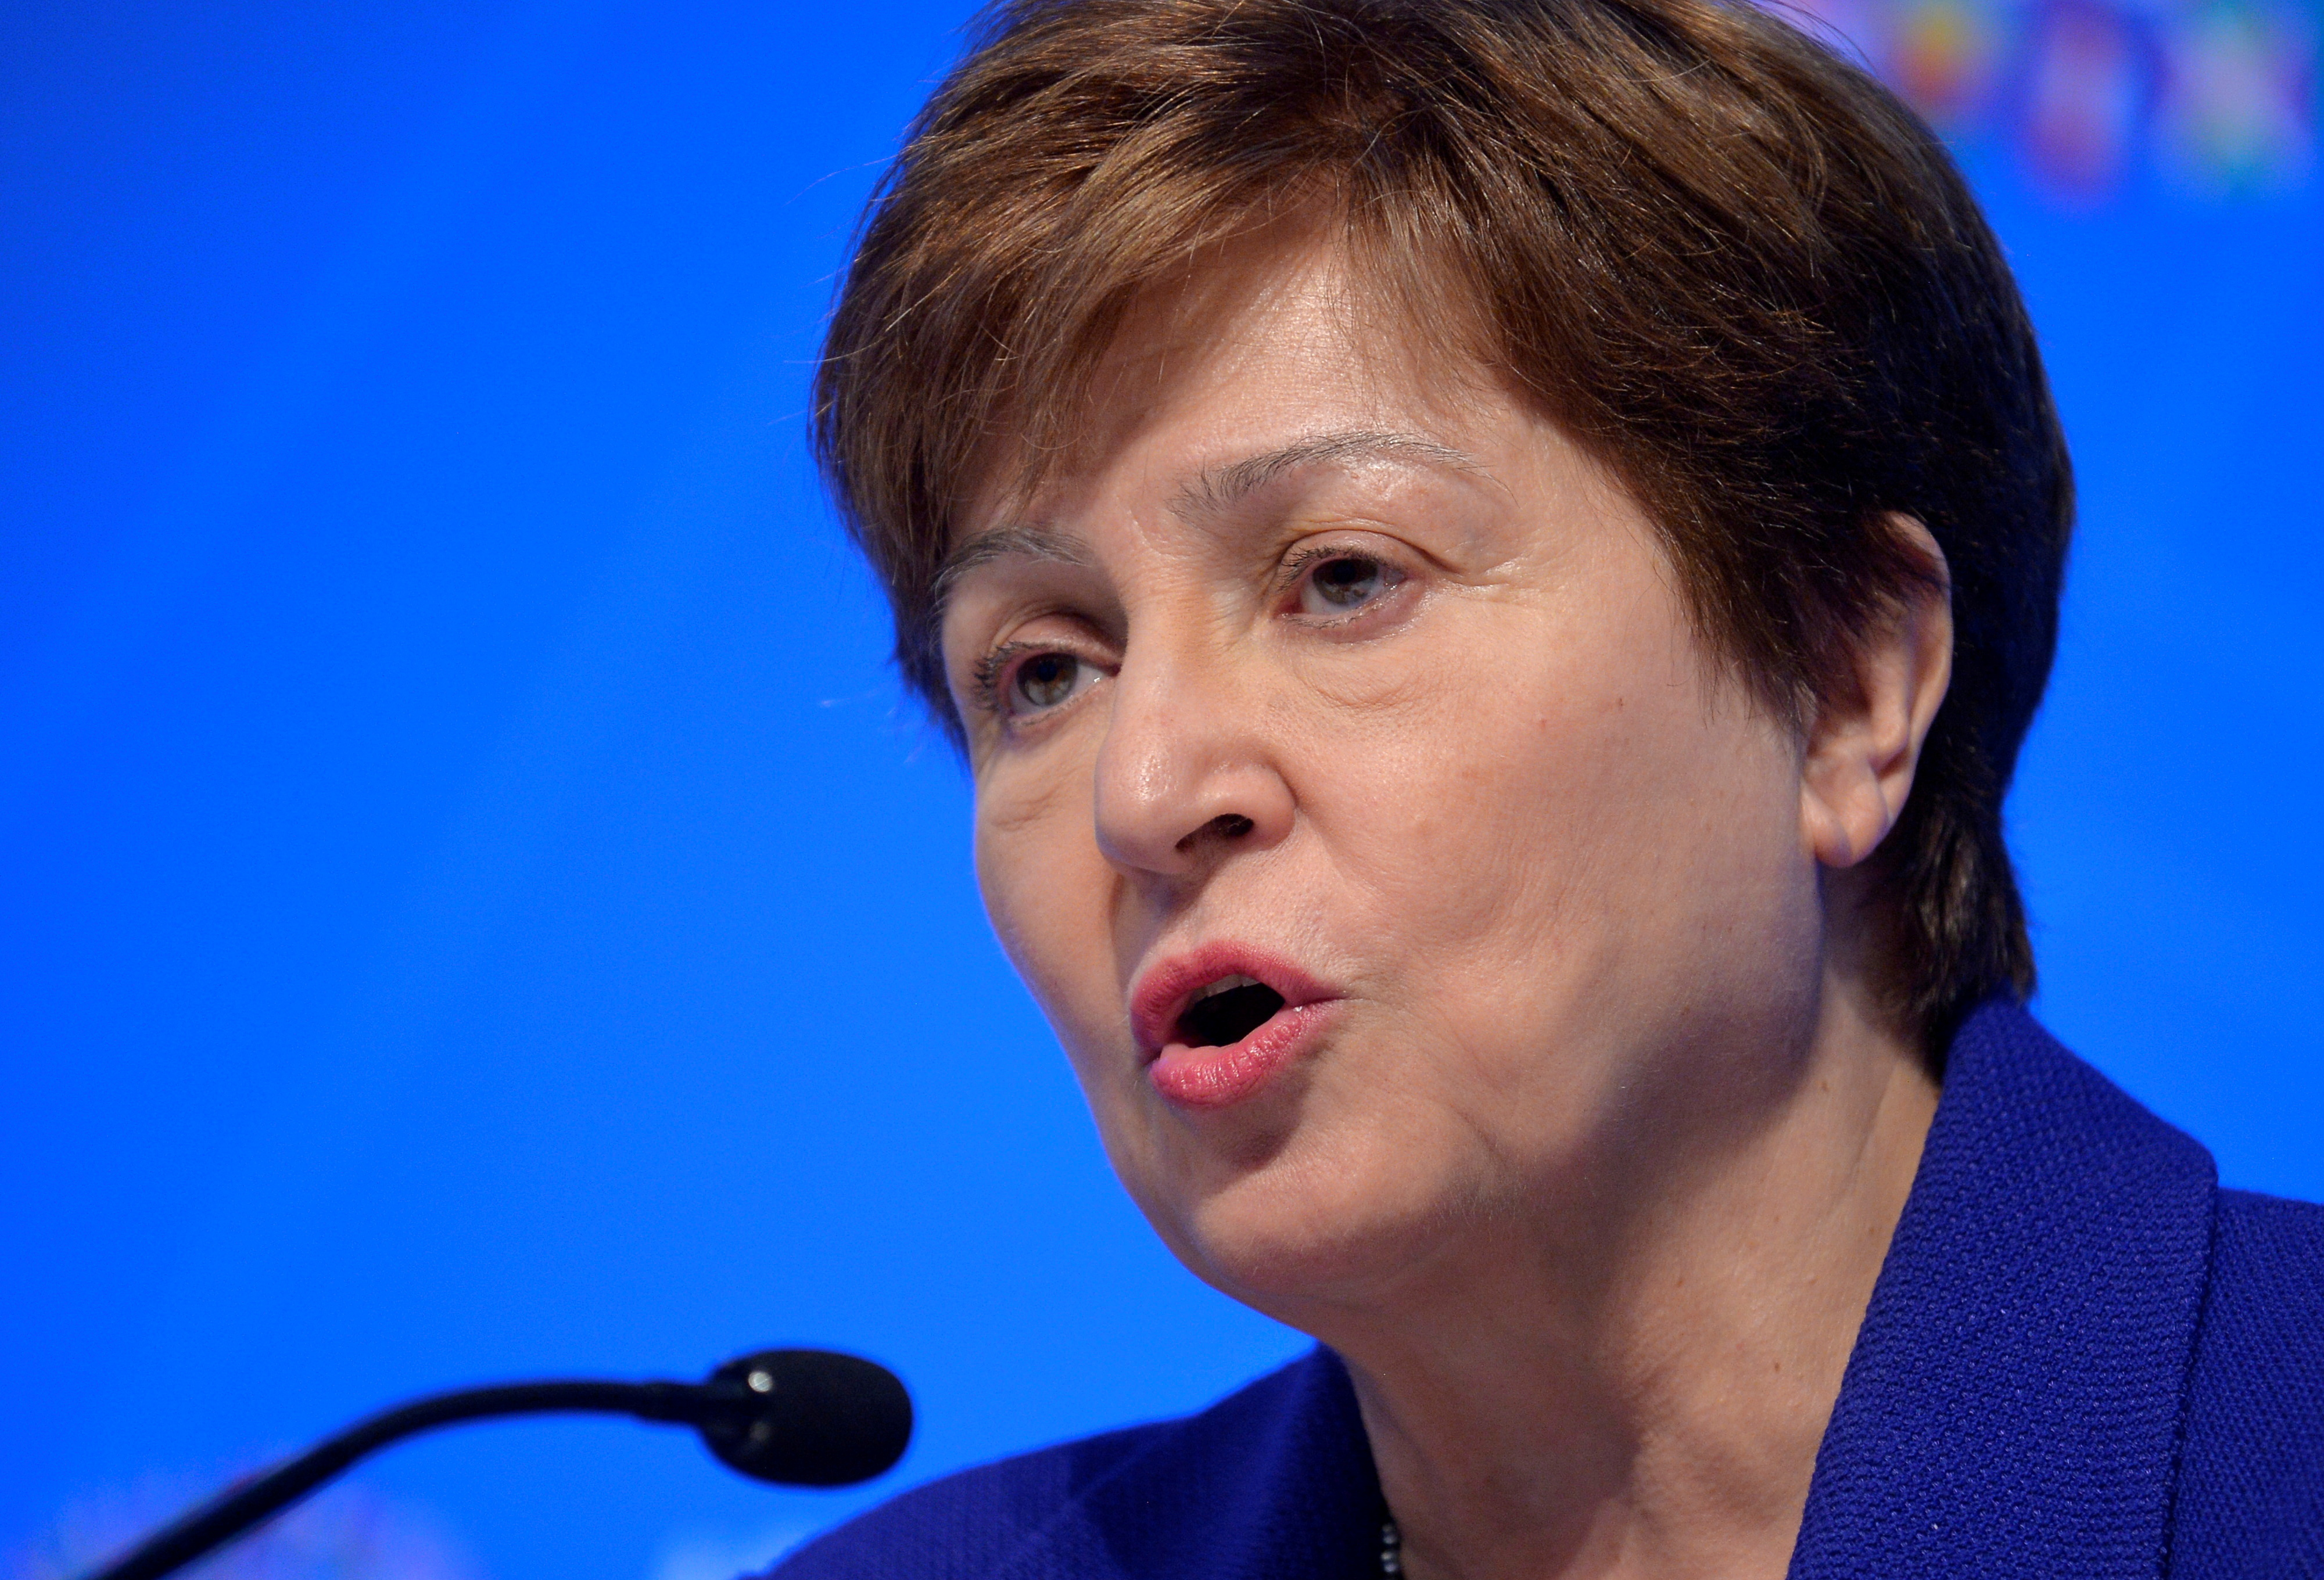 International Monetary Fund (IMF) Managing Director Kristalina Georgieva makes remarks during a closing news conference for the International Monetary Finance Committee, during the IMF and World Bank's 2019 Annual Meetings of finance ministers and bank governors, in Washington, U.S., October 19, 2019.   REUTERS/Mike Theiler